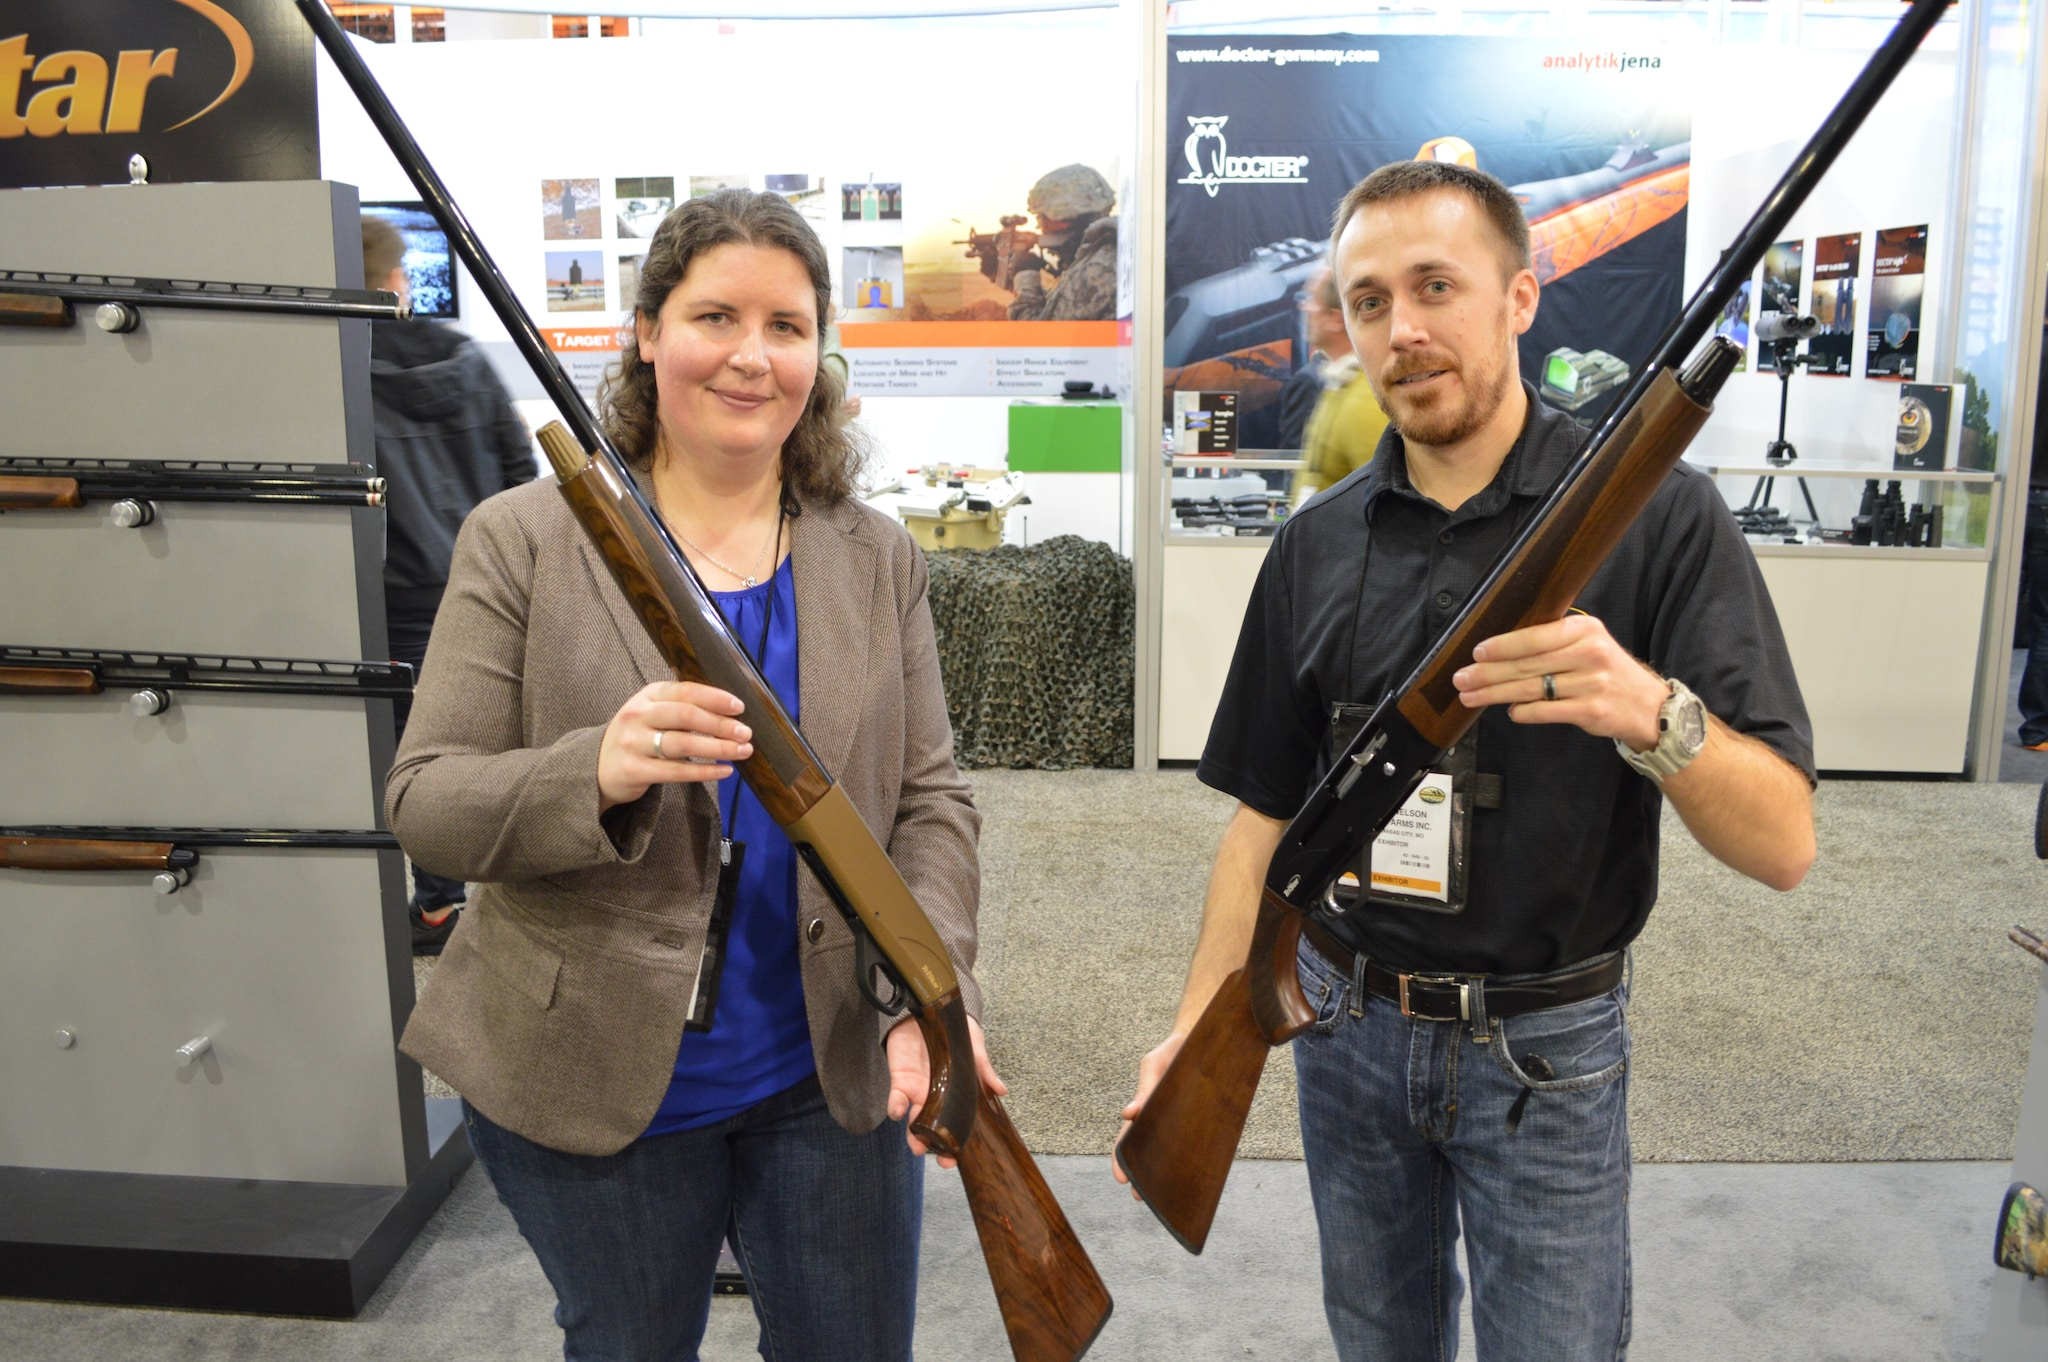 TriStar's 28-gauge New Viper G2 28-gauge shotguns available in Bronze or Wood models, targeting for the sporting and upland hunting markets.